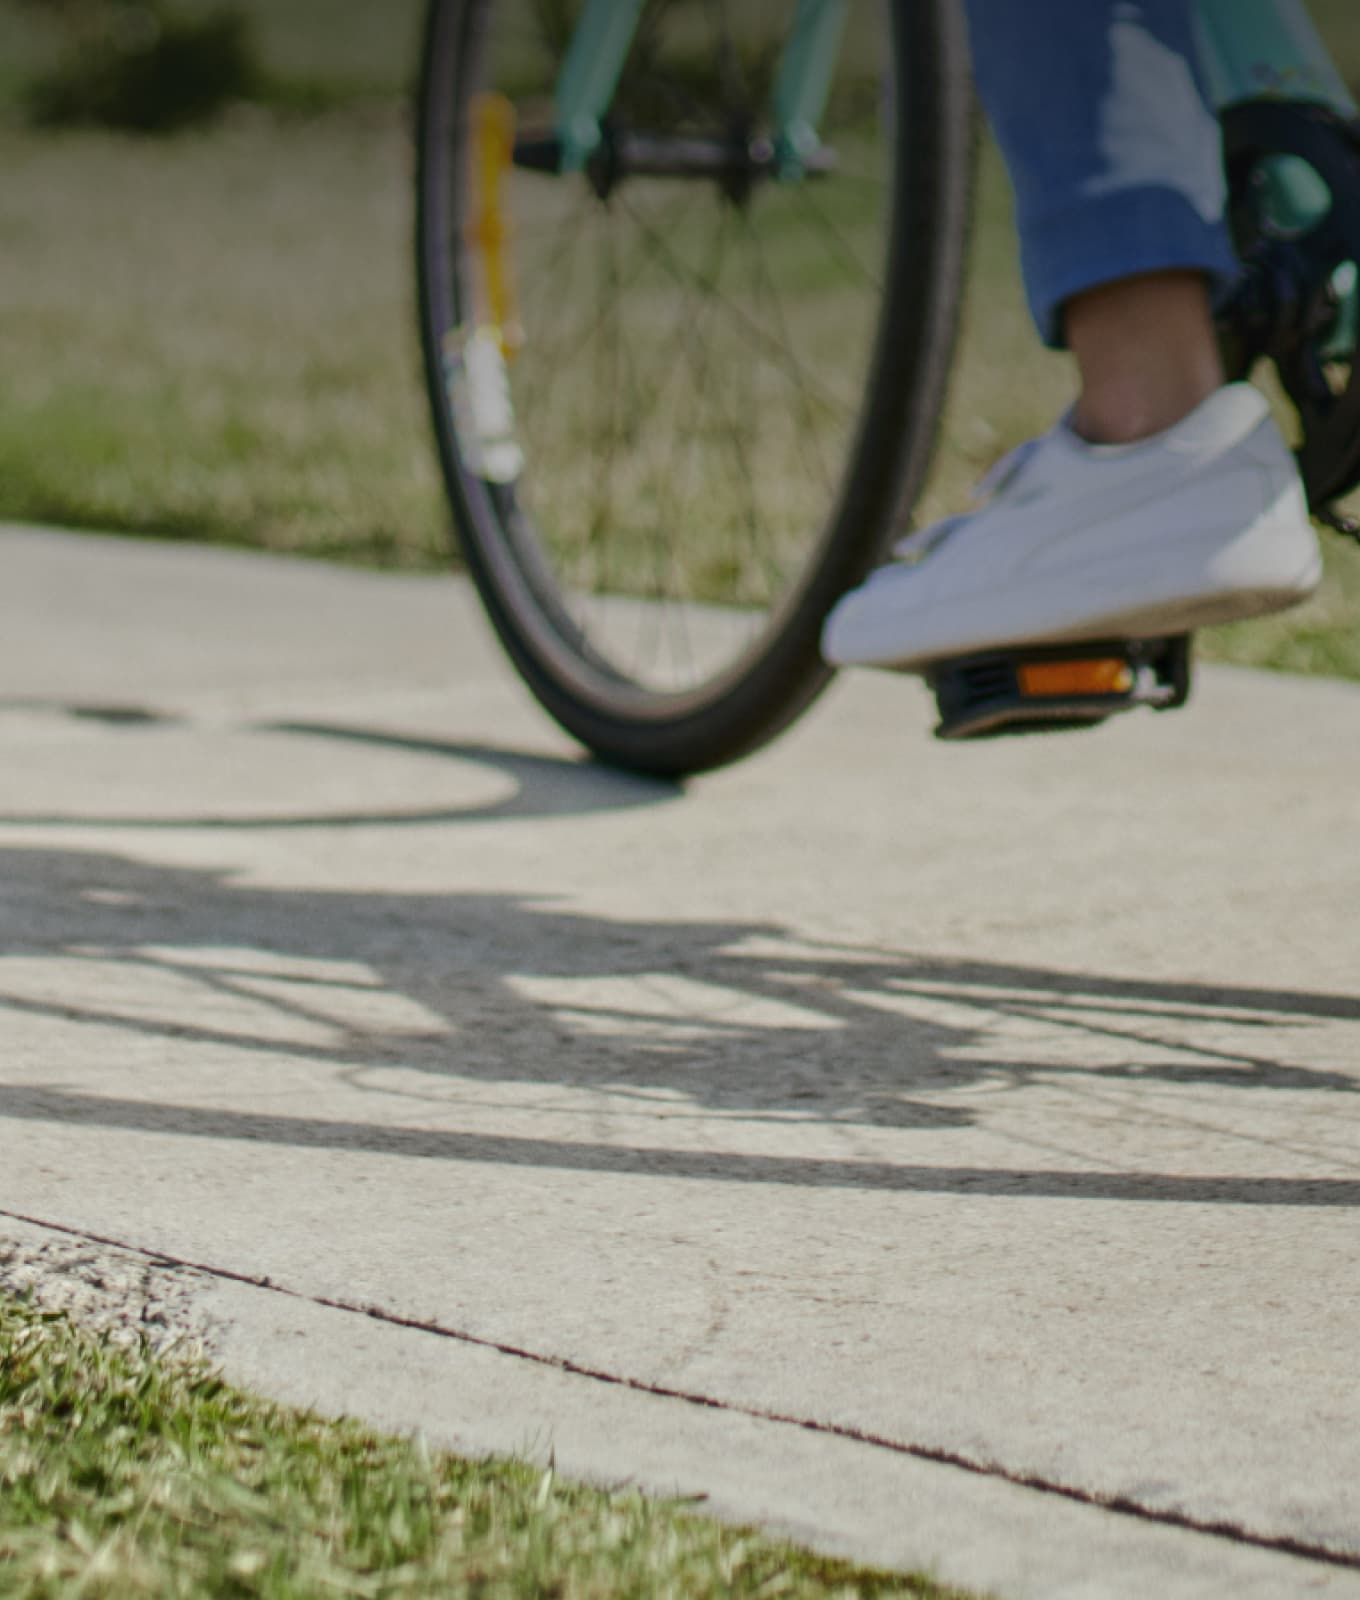 Cyclist riding on a bike path at Alira in soft focus